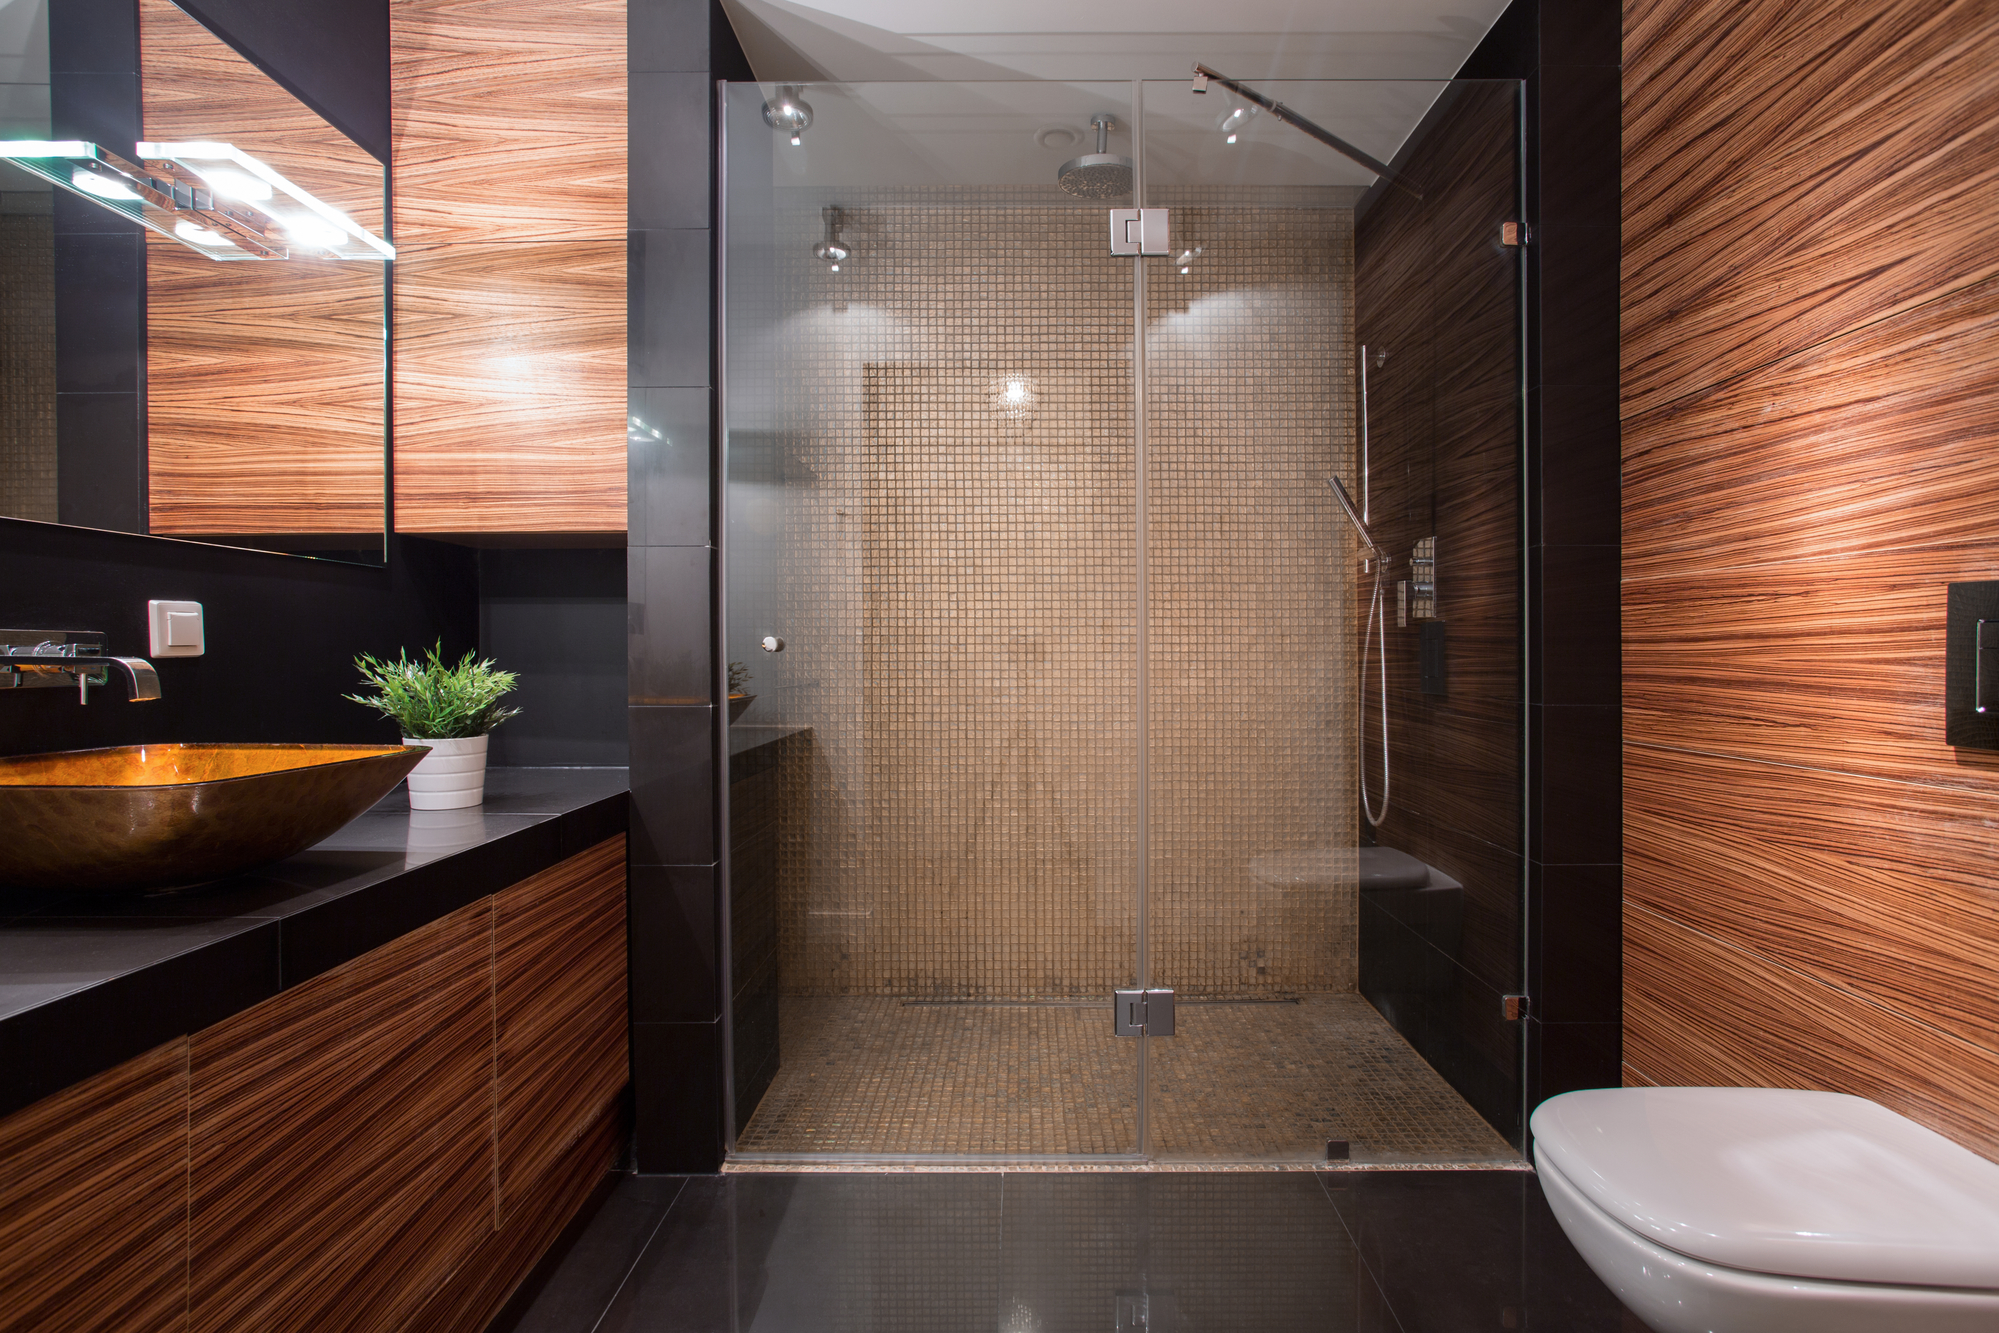 costs on las angie to a s list remodel how htm money bathroom save articles vegas